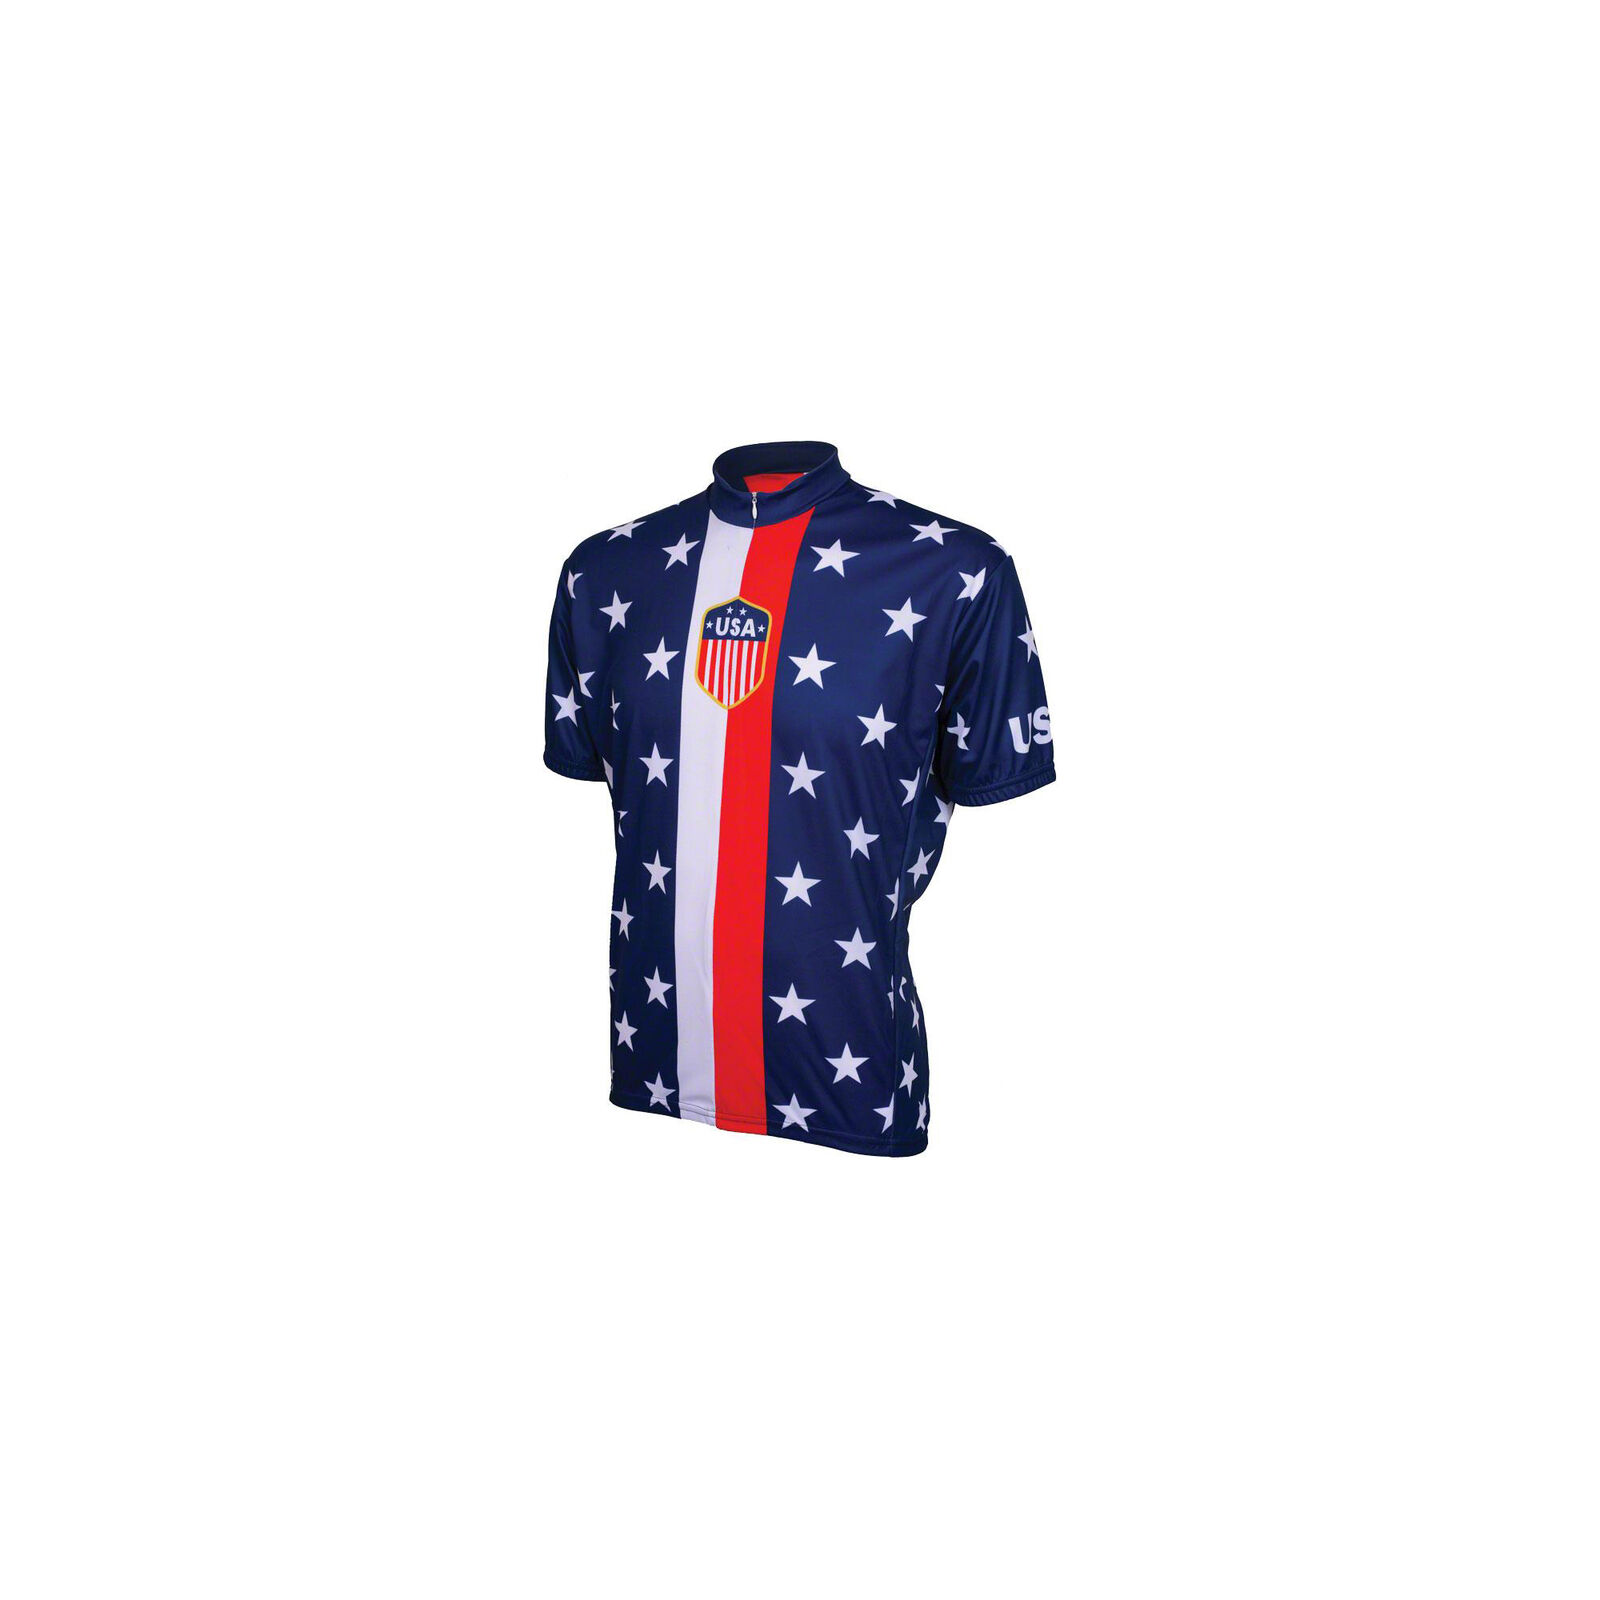 World Jerseys 1956 Retro USA Men's Cycling Jersey  Red  White bluee, LG  online at best price